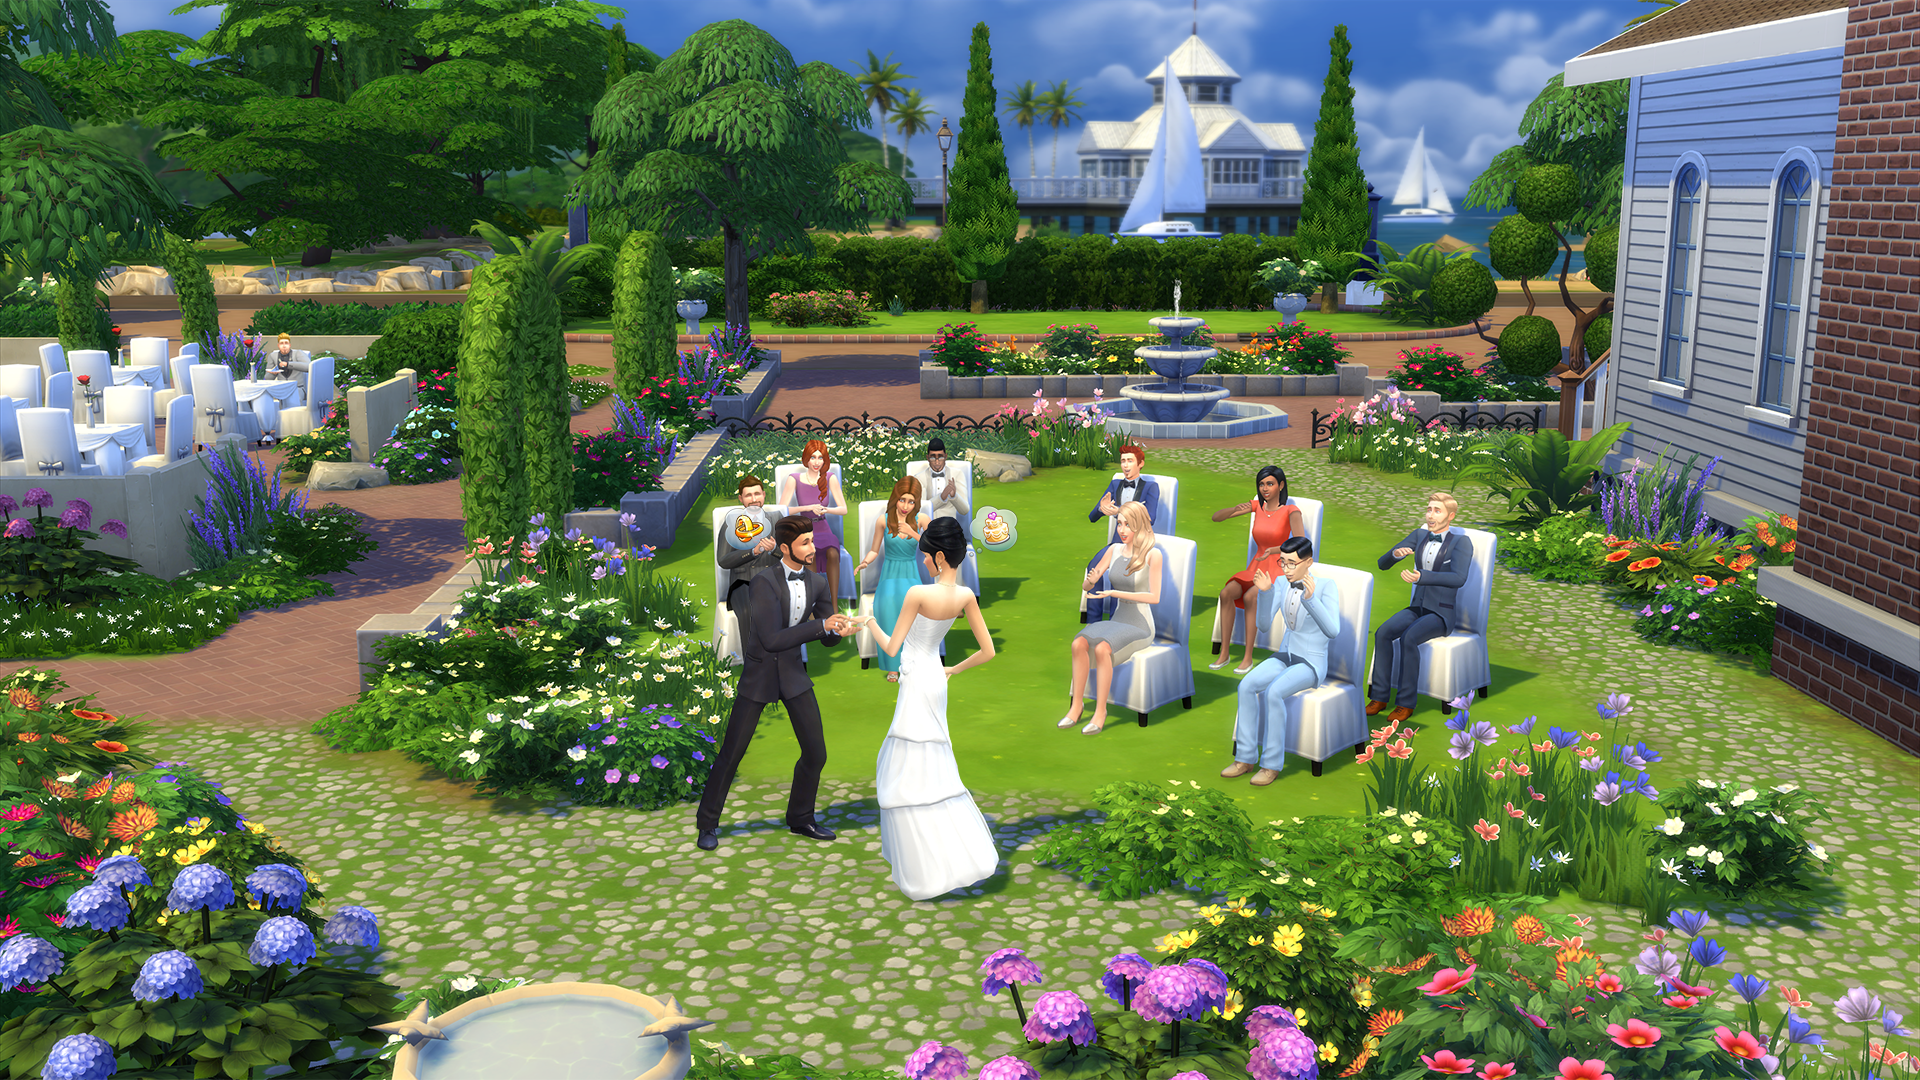 For these queer gamers, the Sims franchise is a safe haven